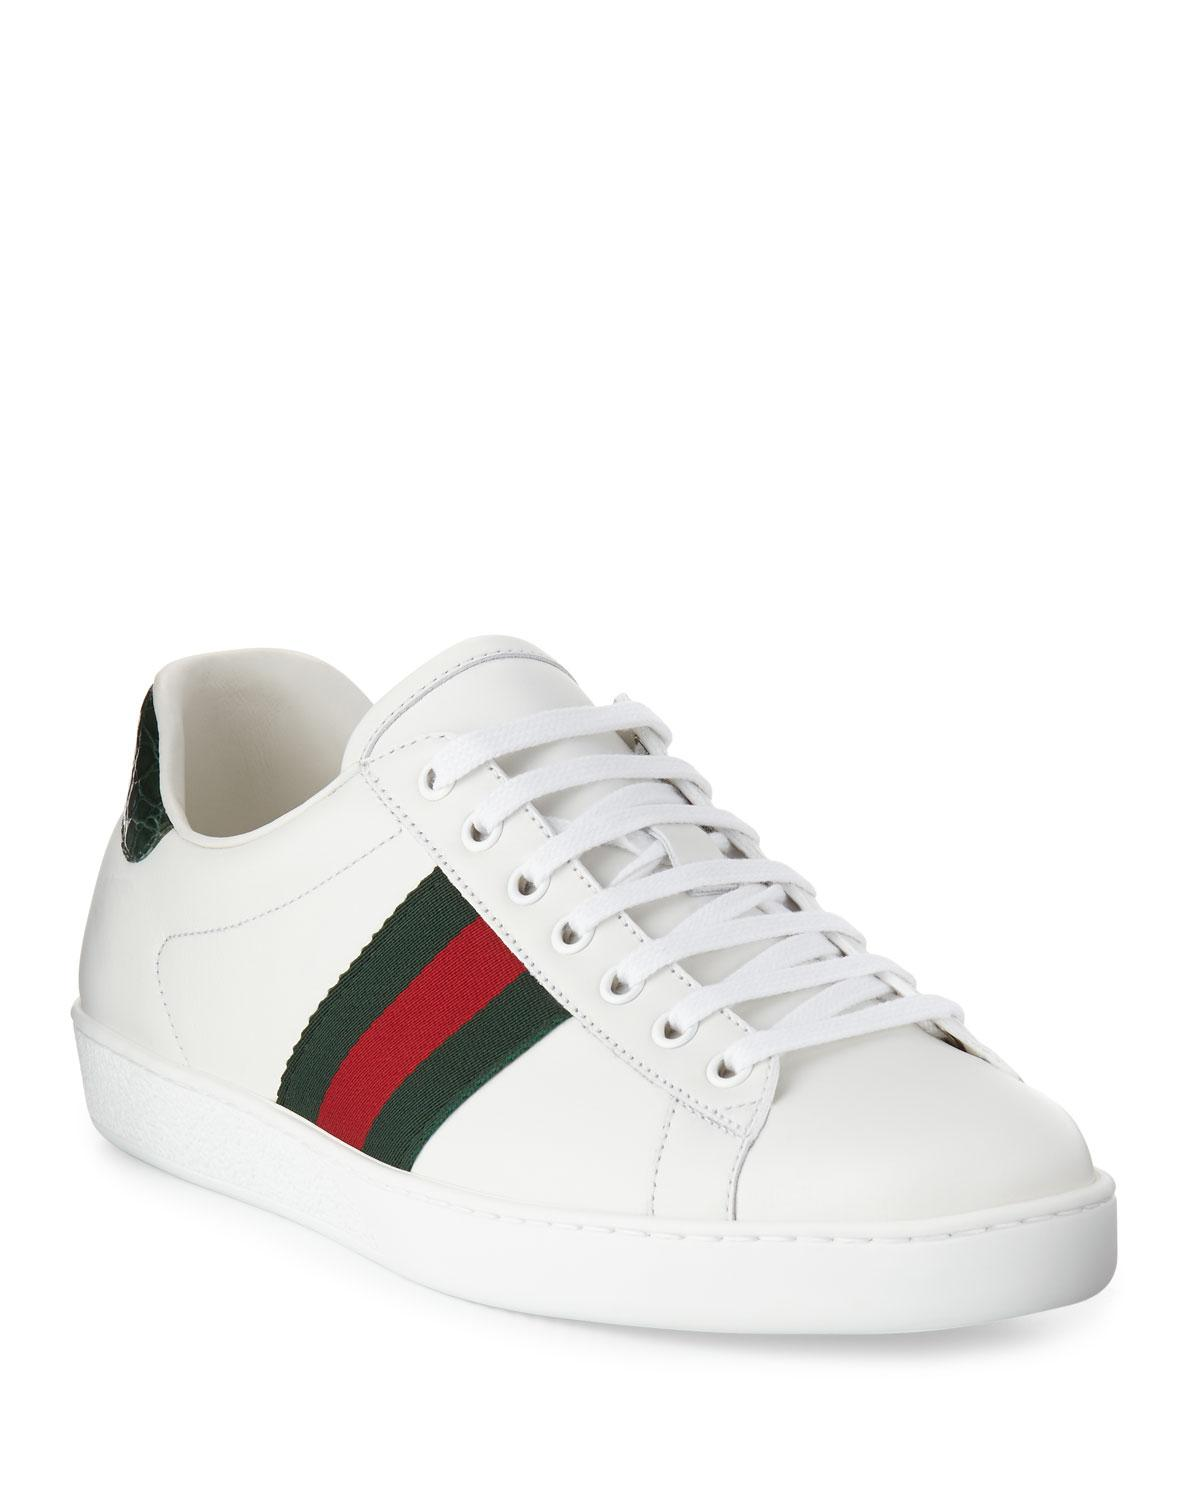 ebcd8892cac Lyst - Gucci Men s New Ace Leather Low-top Sneakers in White